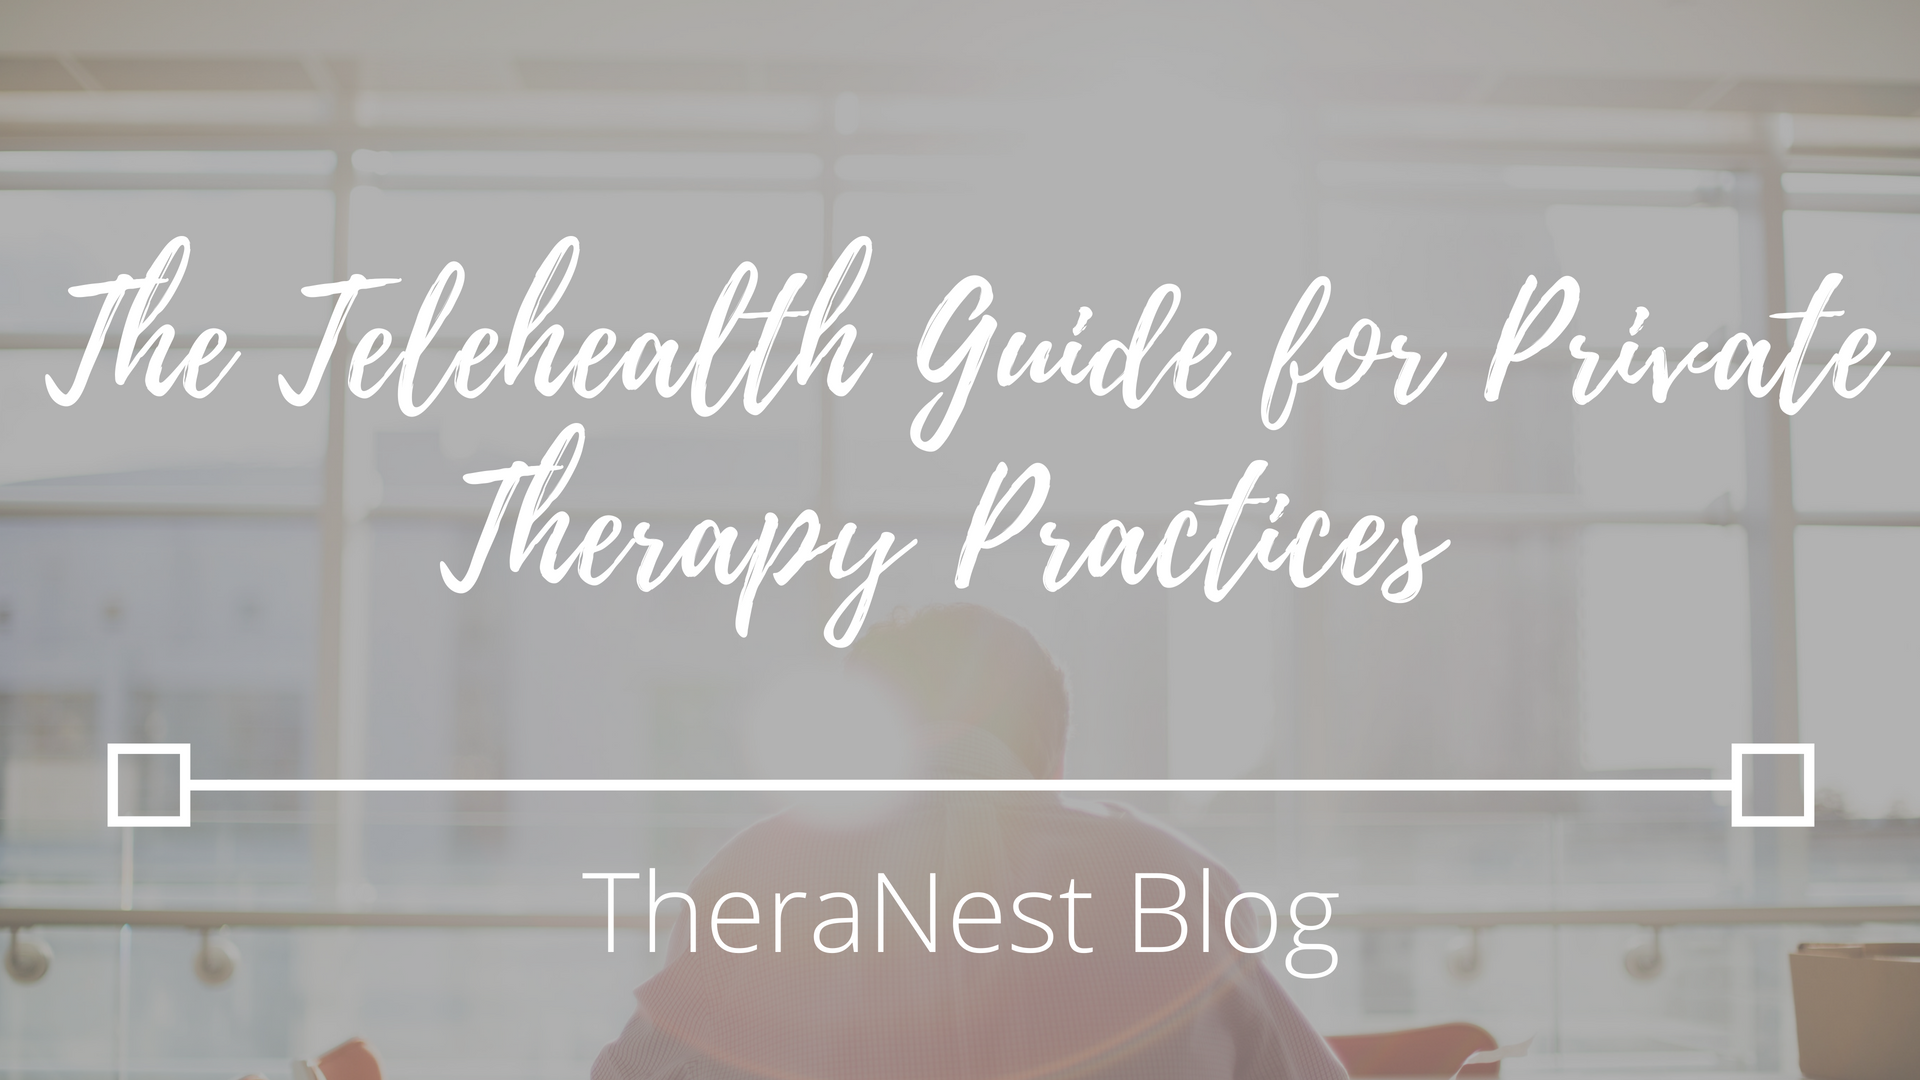 Image of The Telehealth Guide for Private Therapy Practices - TheraNest Blog